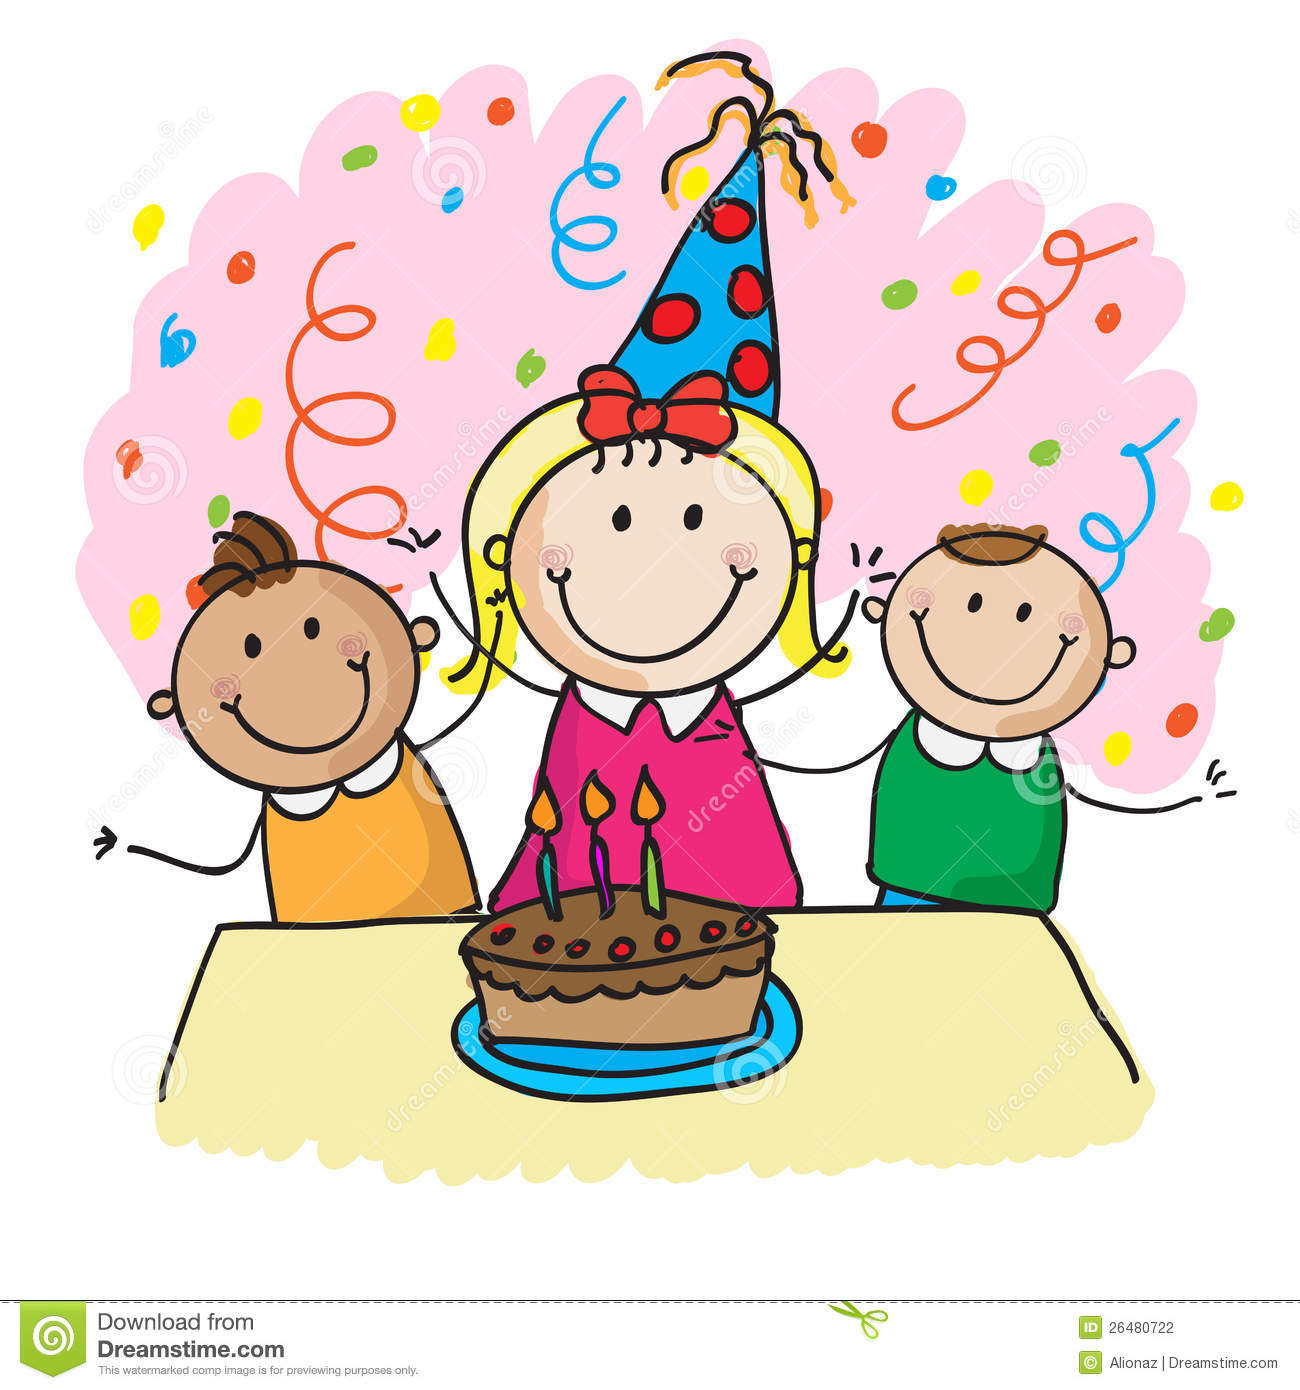 birthday clipart images free ; 358384067a6f43ef6af26ed2847cec16_birthday-celebration-clipart-many-interesting-cliparts-birthday-party-clipart-free_1300-1390